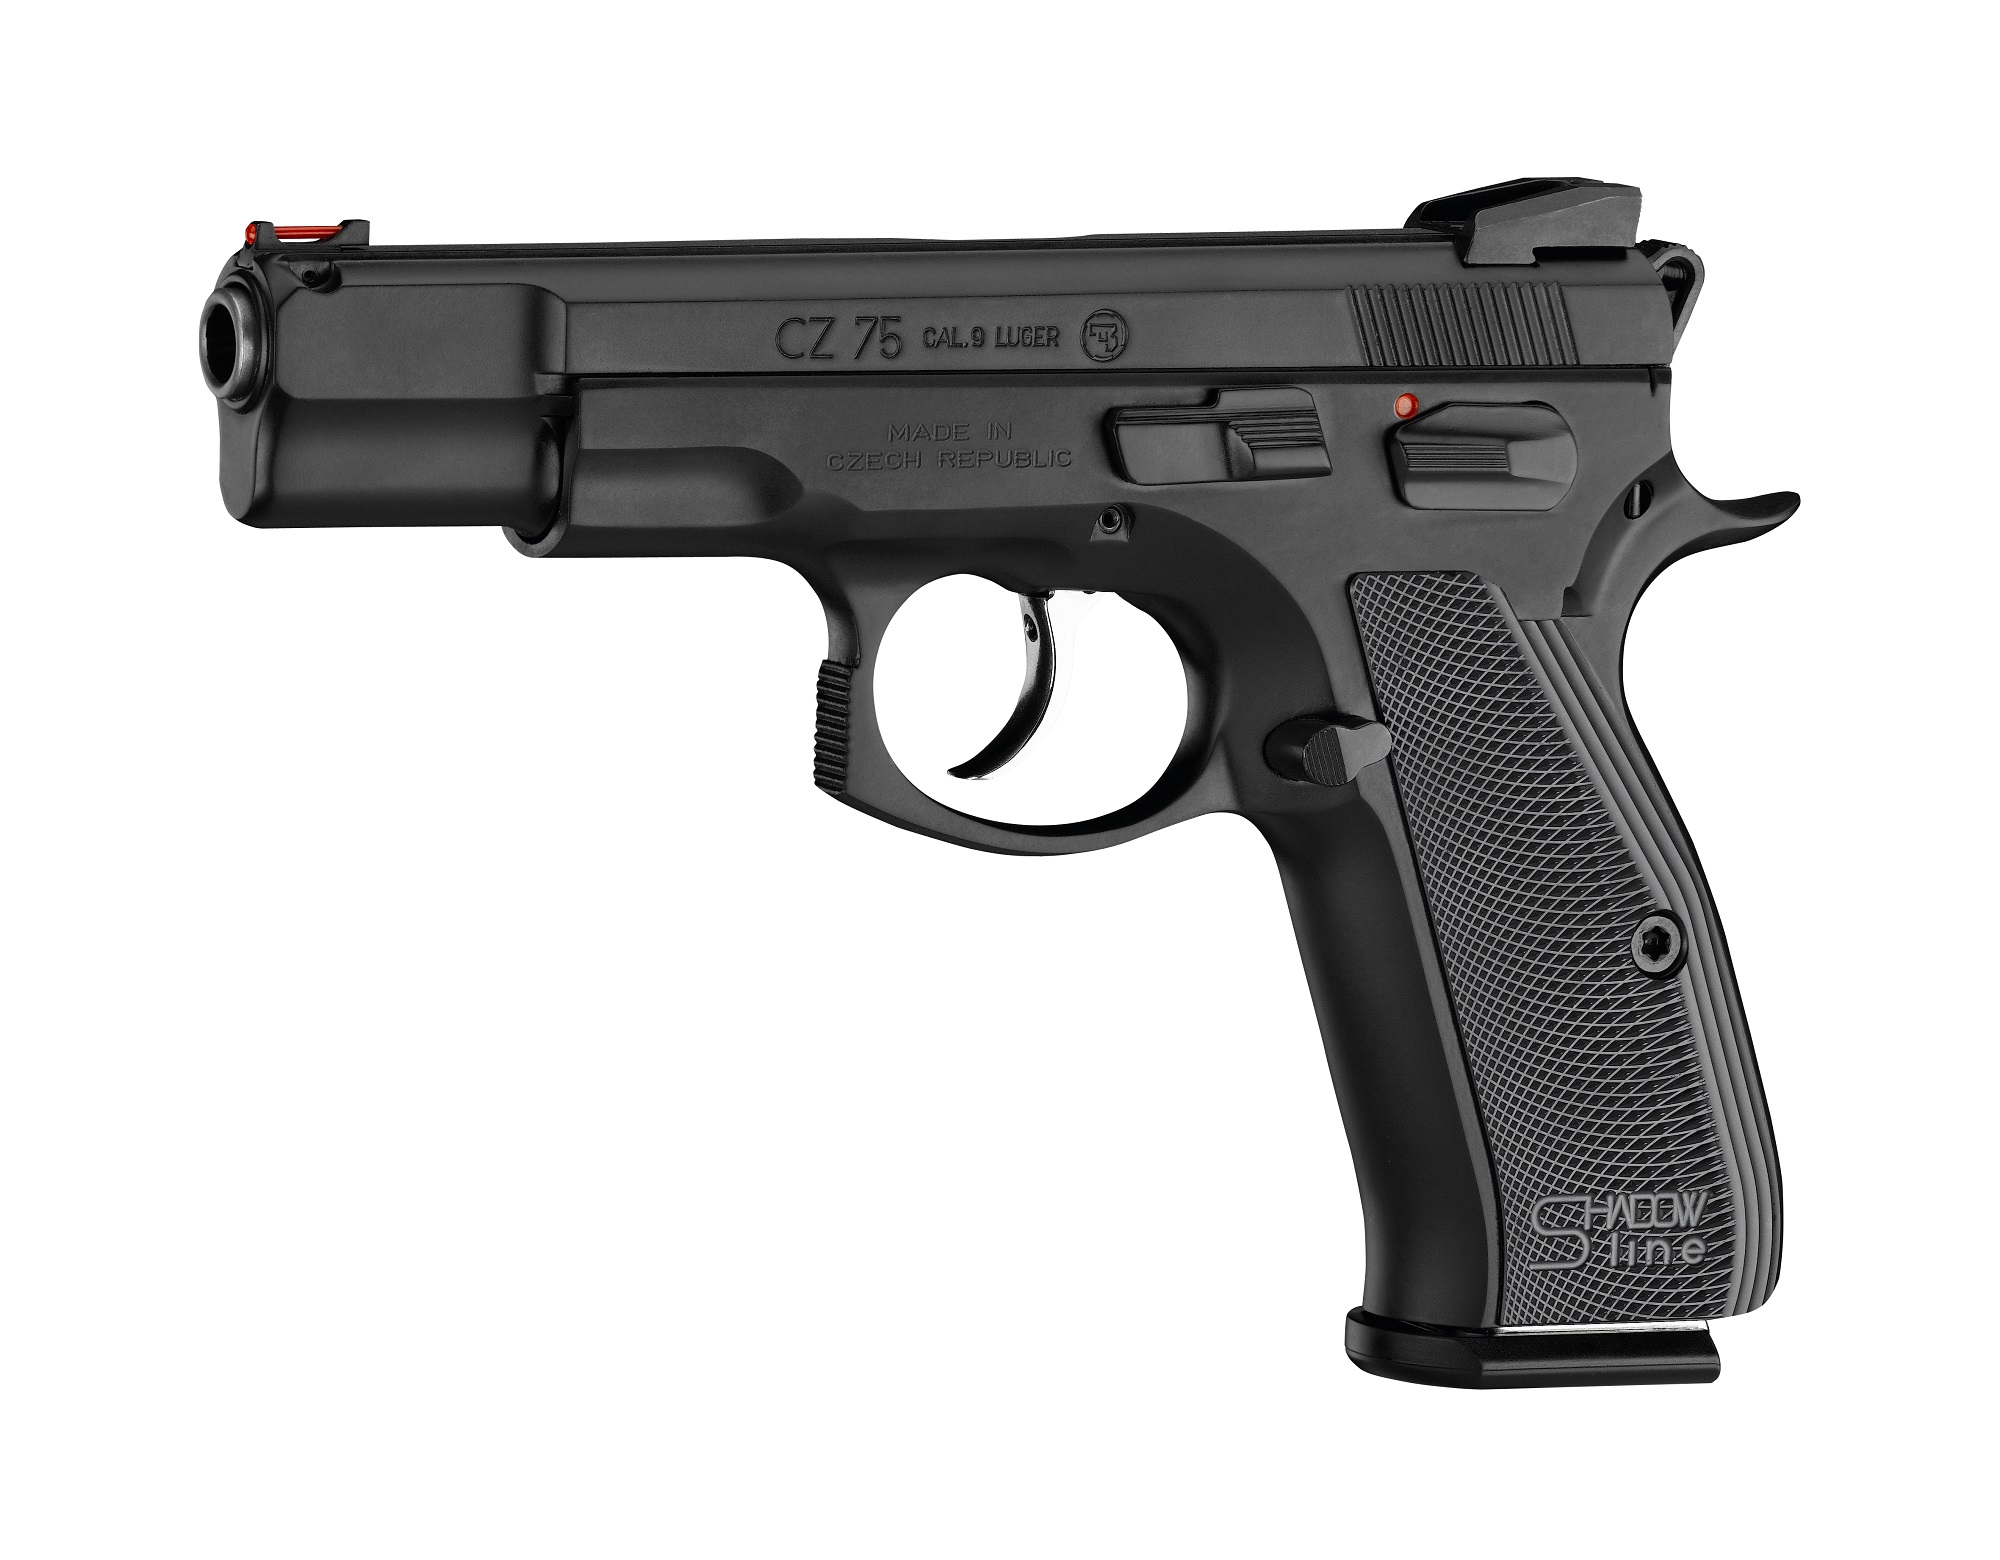 CZ-75 Shadow Line - Pistols - News - all4shooters.com